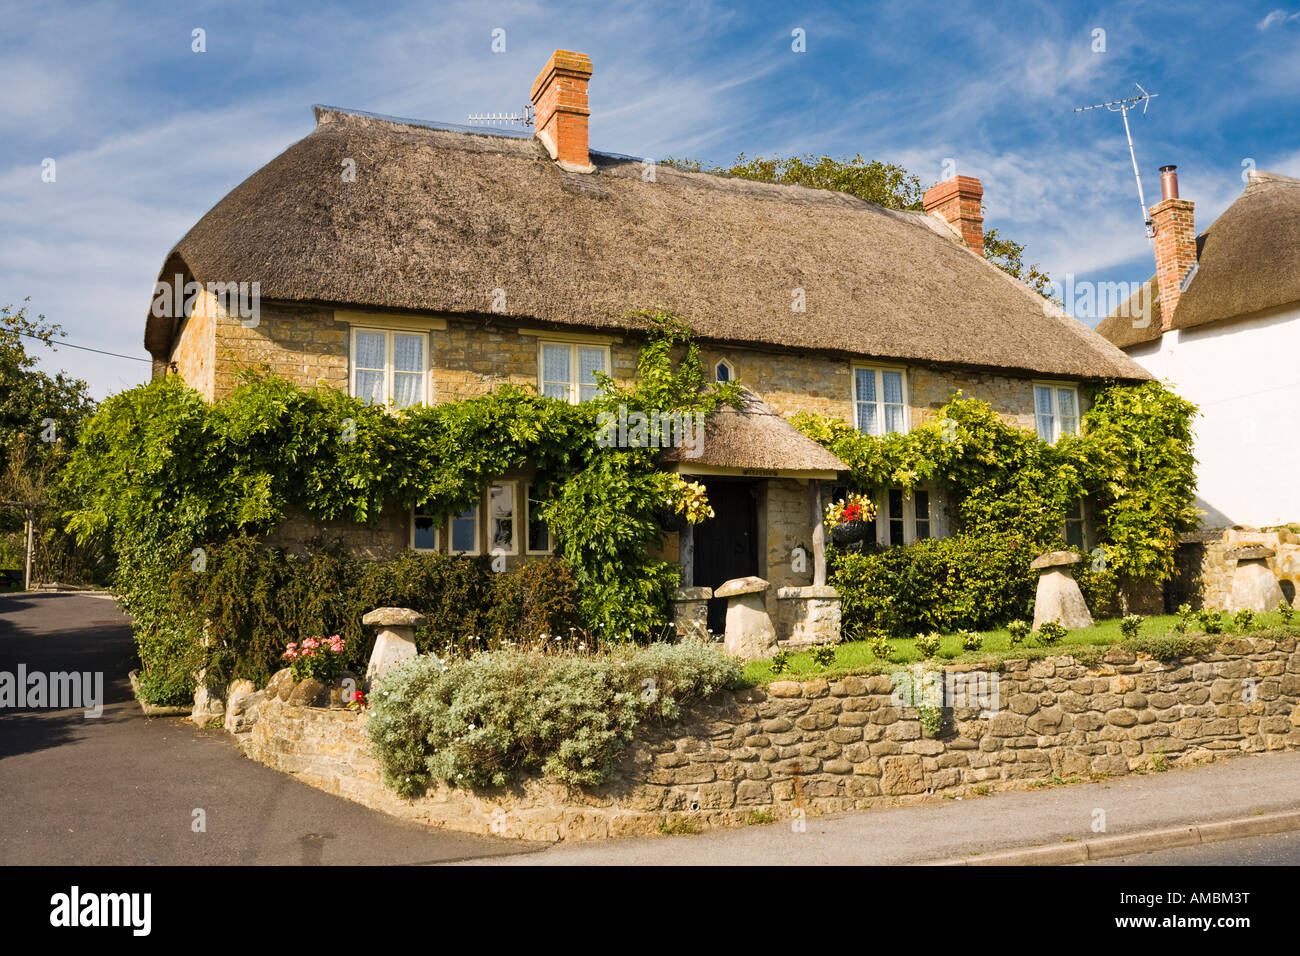 Thatched cottage at the village of Chideock, Dorset, UK - Thatched cottage house, England - Stock Image